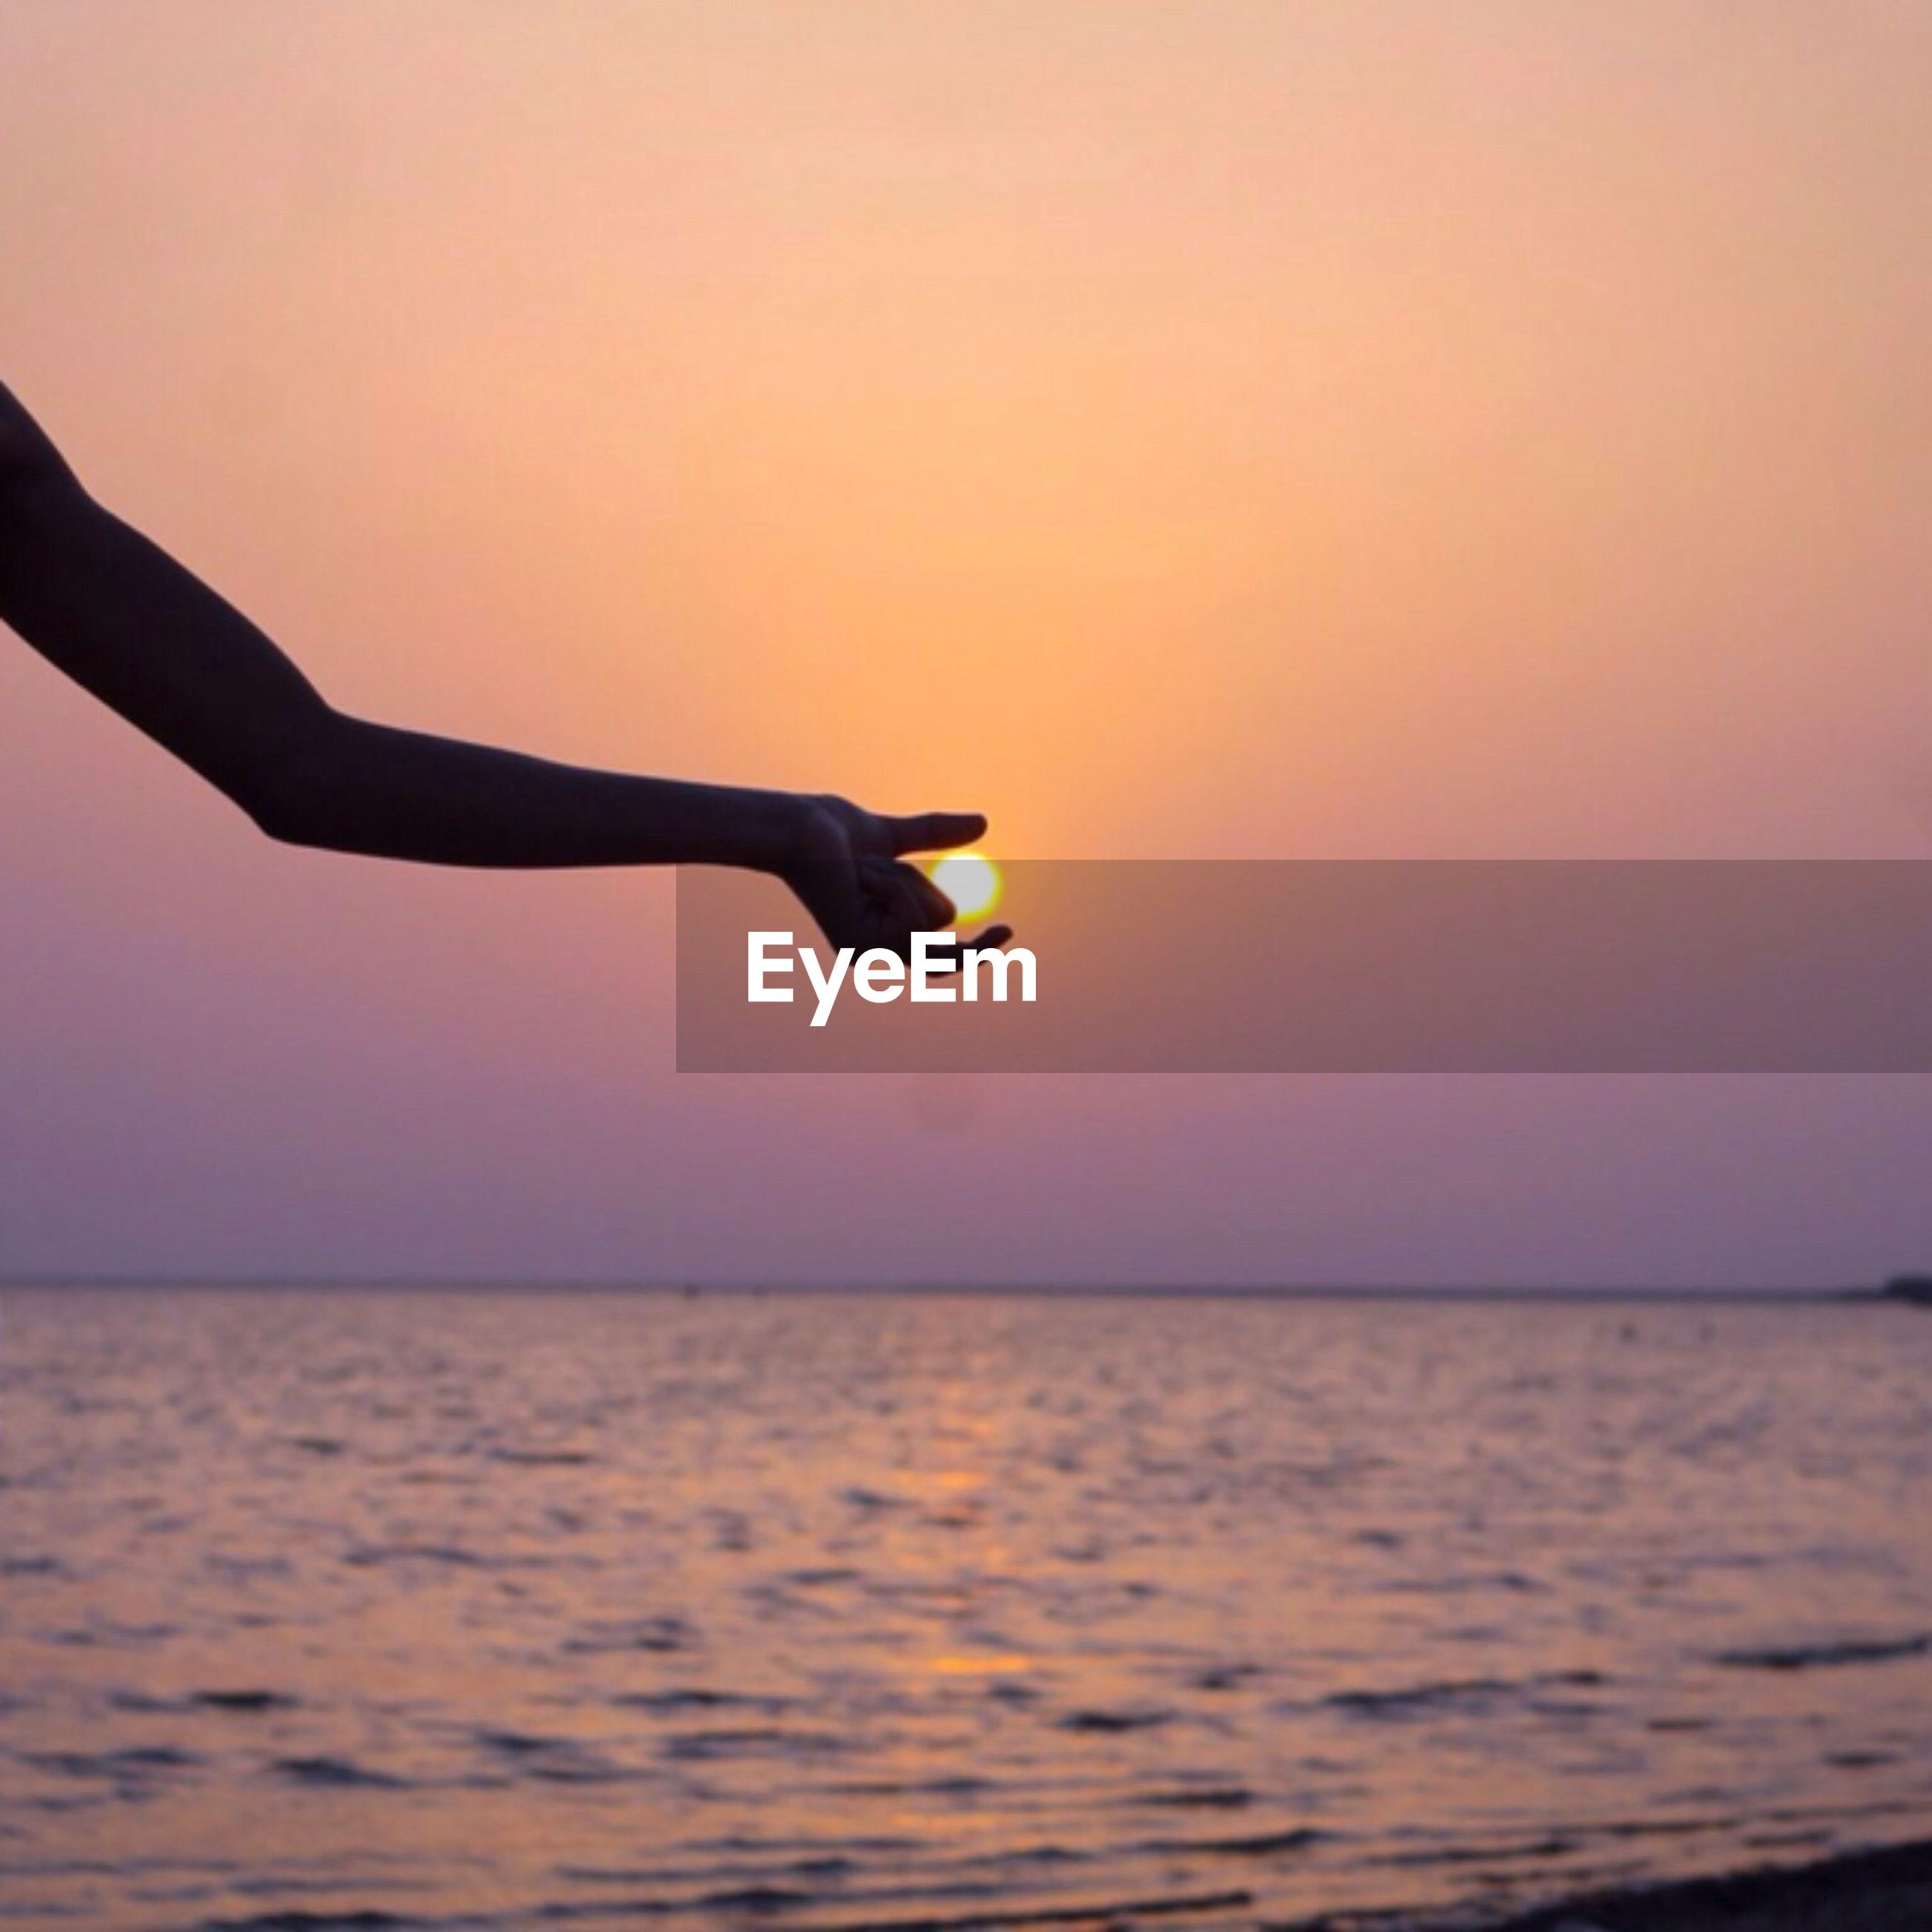 sea, horizon over water, water, sunset, scenics, waterfront, tranquil scene, idyllic, person, tranquility, unrecognizable person, beauty in nature, vacations, lifestyles, dusk, sun, nature, tourism, sky, orange color, calm, travel destinations, non-urban scene, dramatic sky, vibrant color, seascape, ocean, outdoors